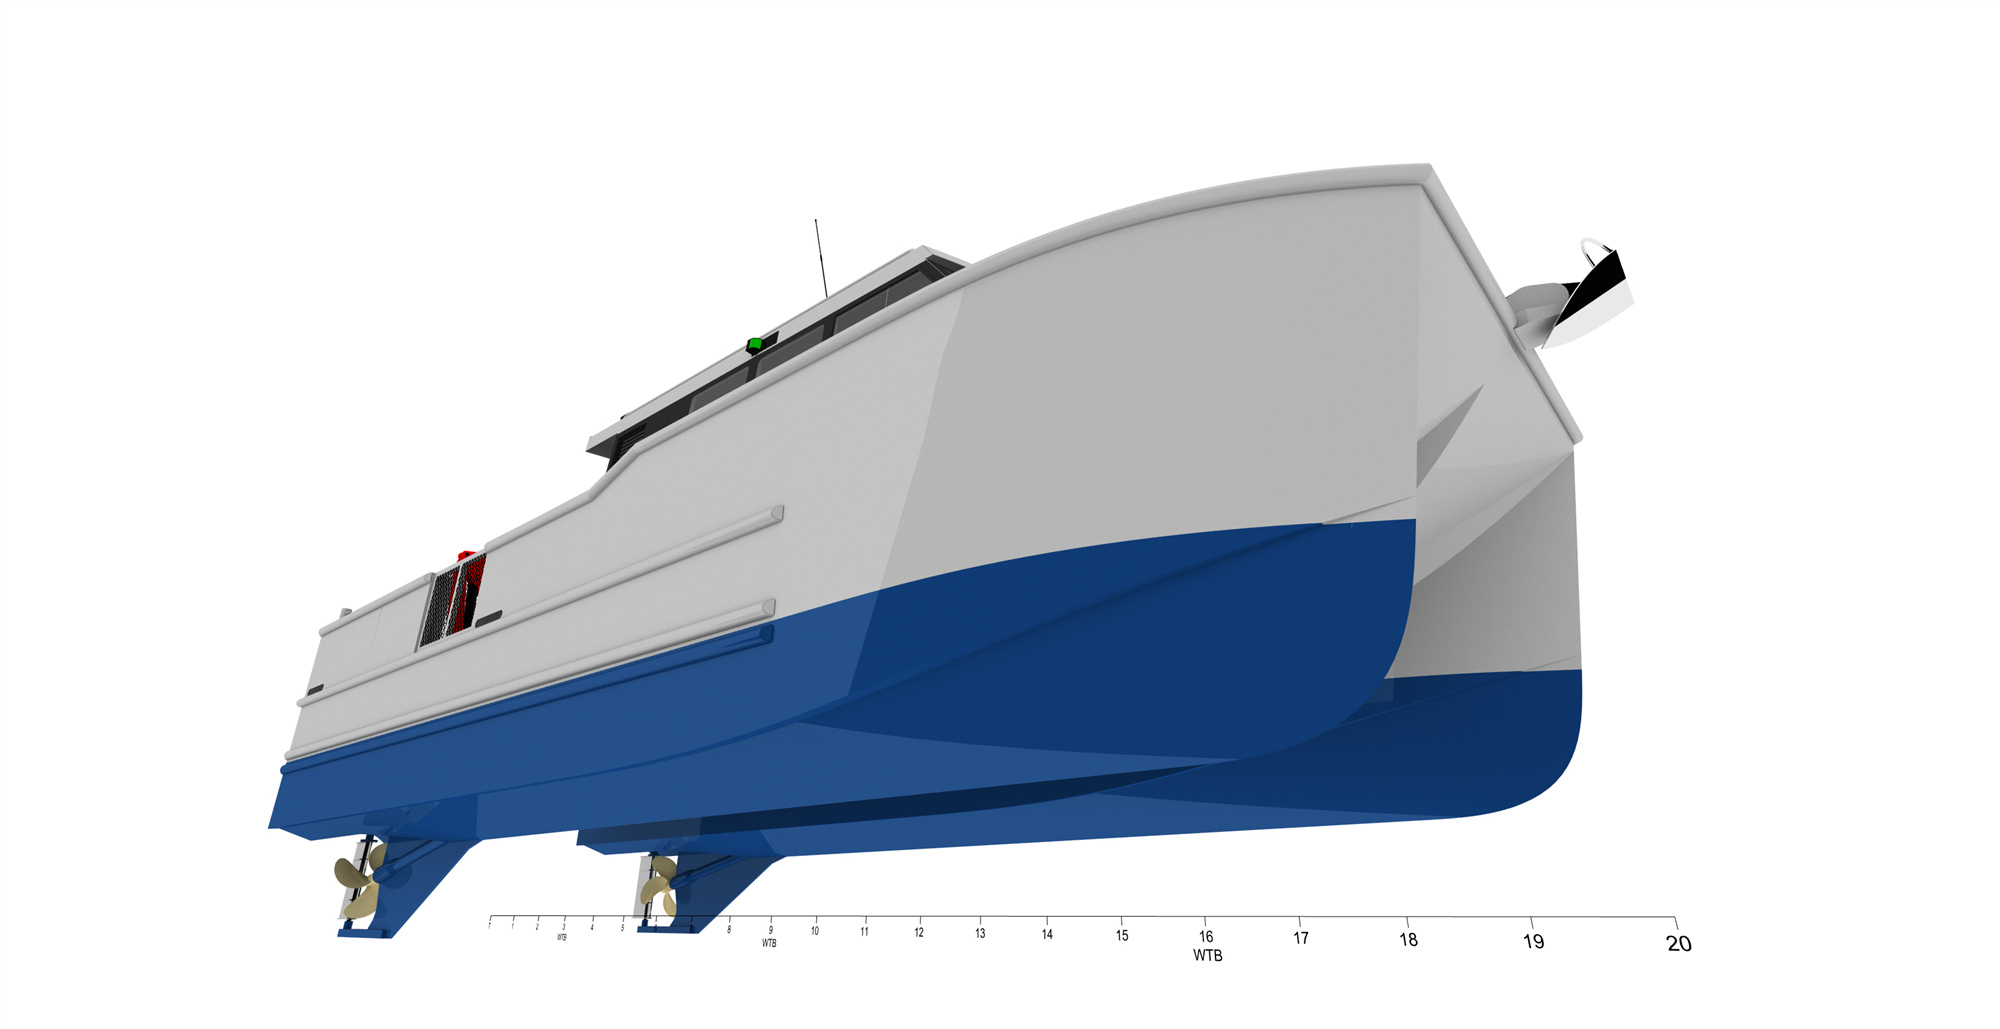 12m Aluminum Catamaran Work And Utility Boats for Sale